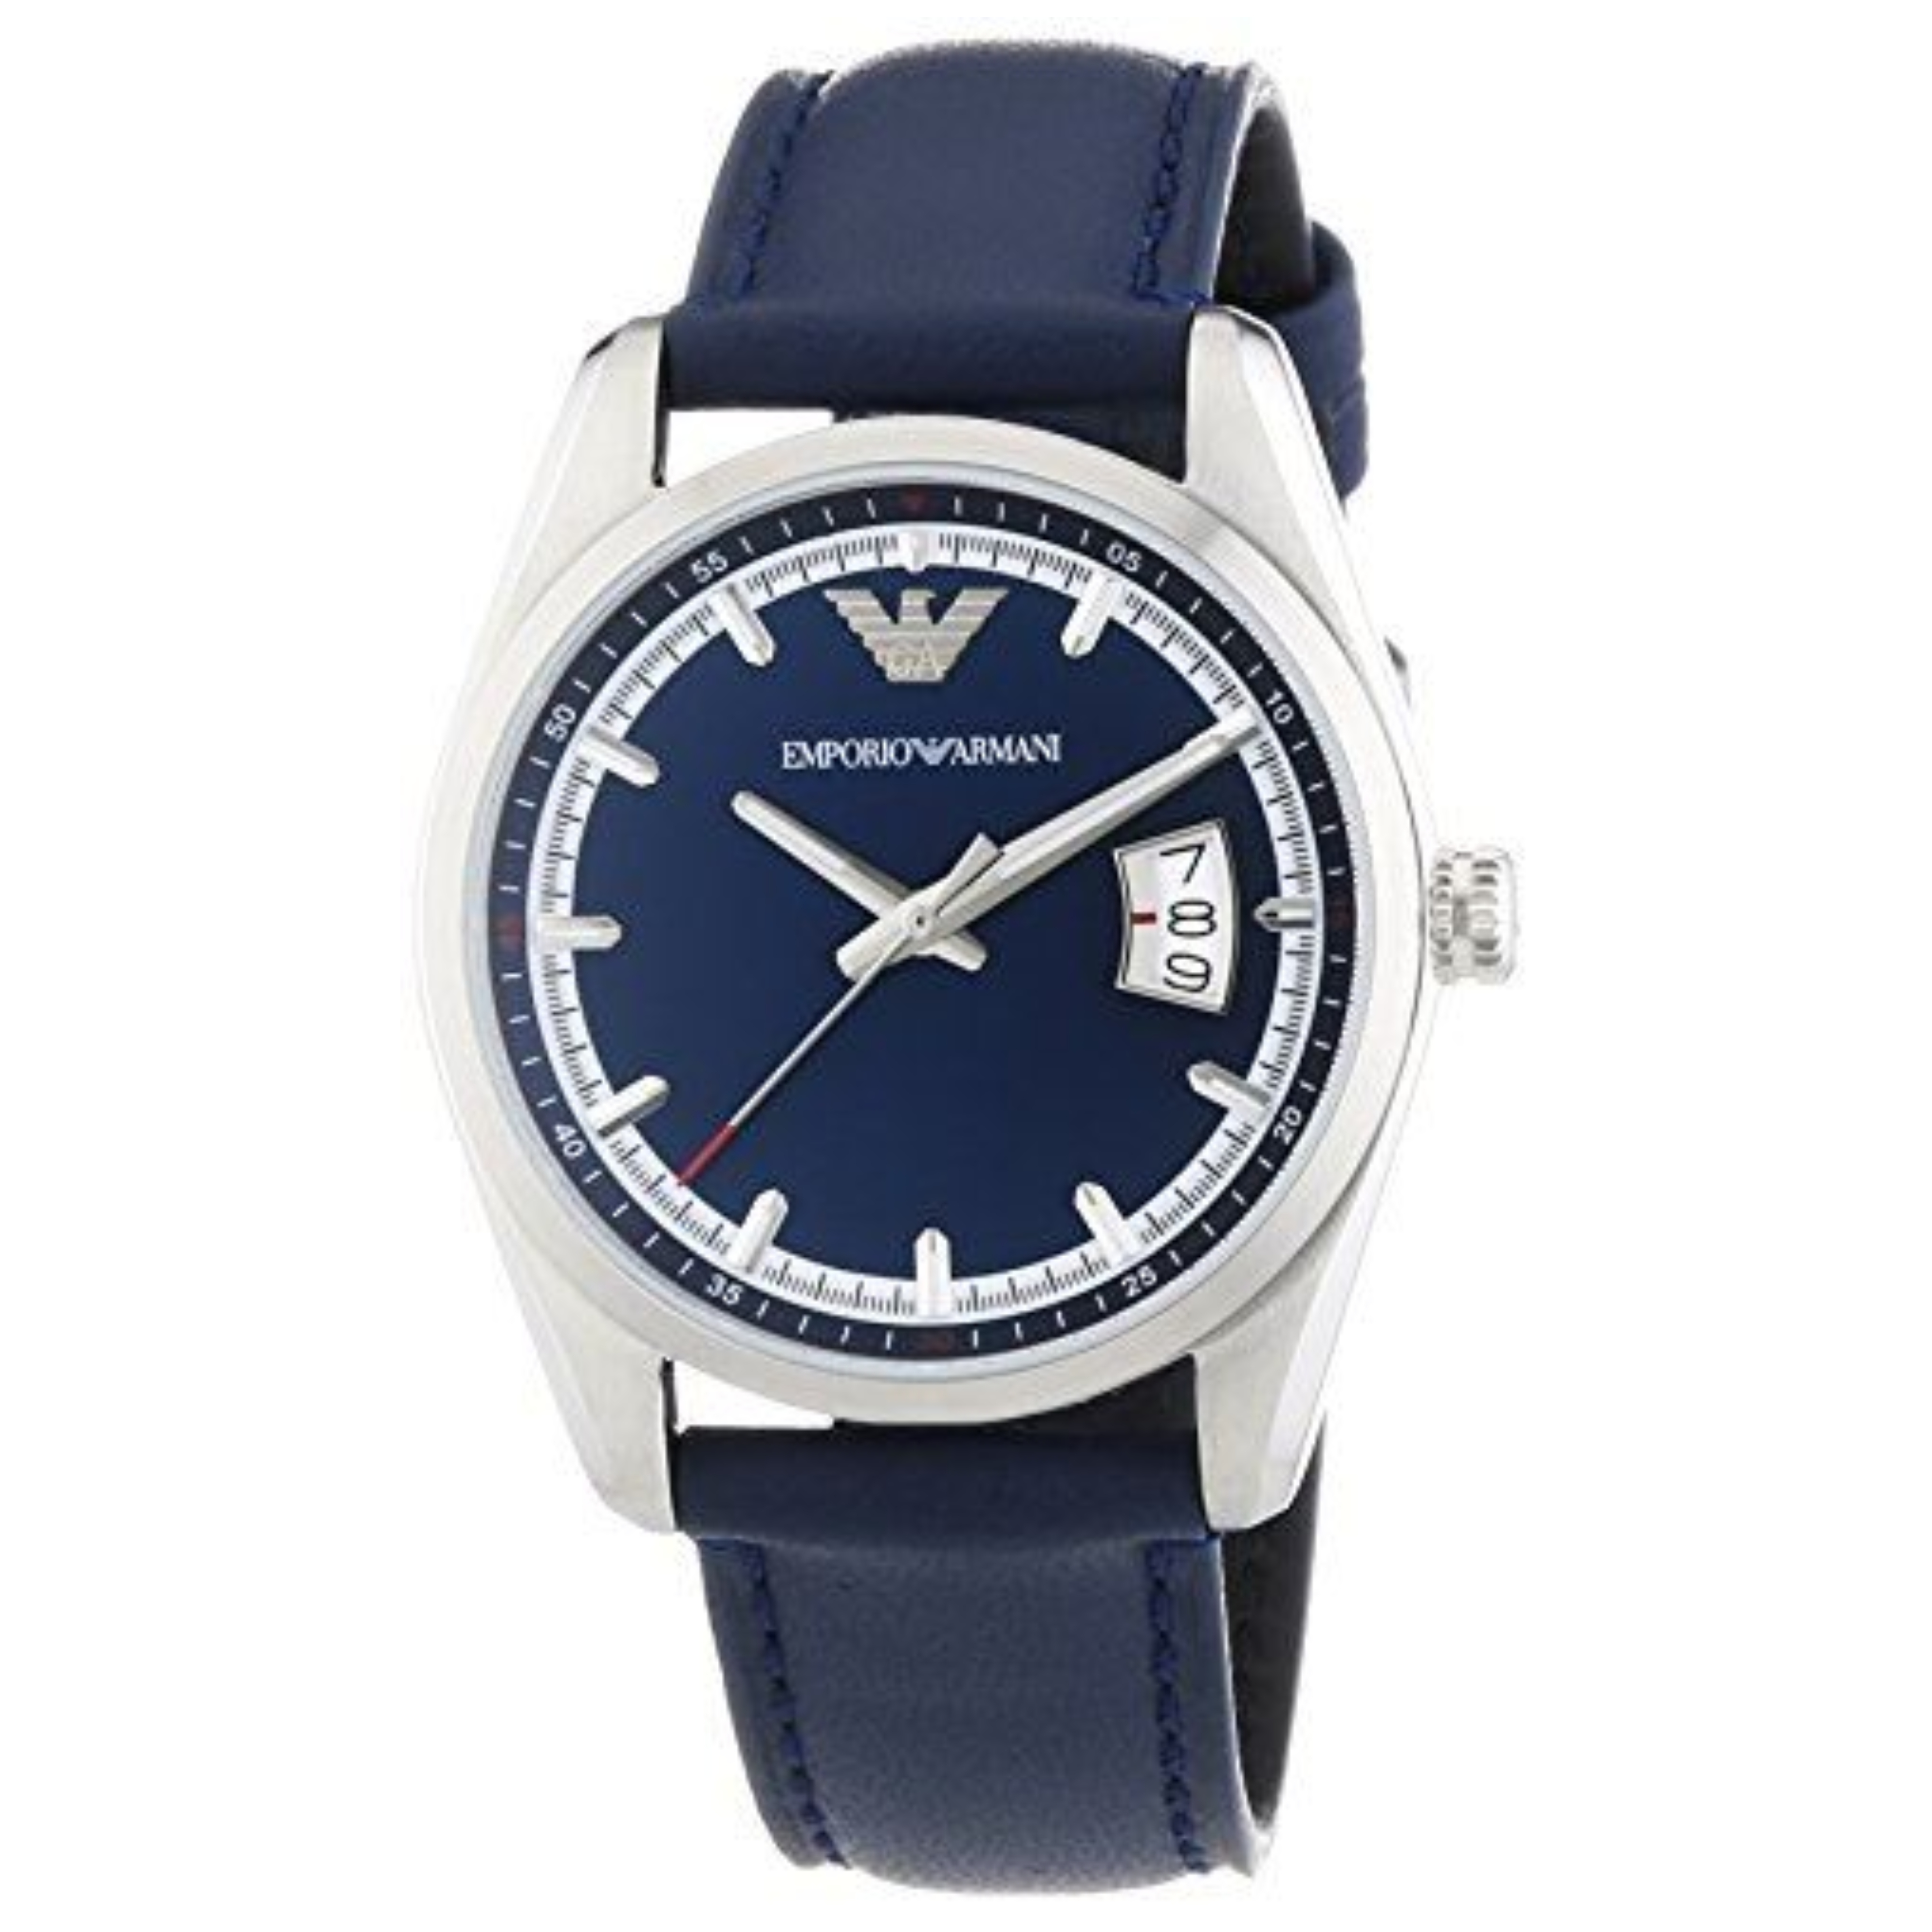 Emporio Armani Men's Formal Watch|Blue Round Dial|Blue Leather Strap|AR6017